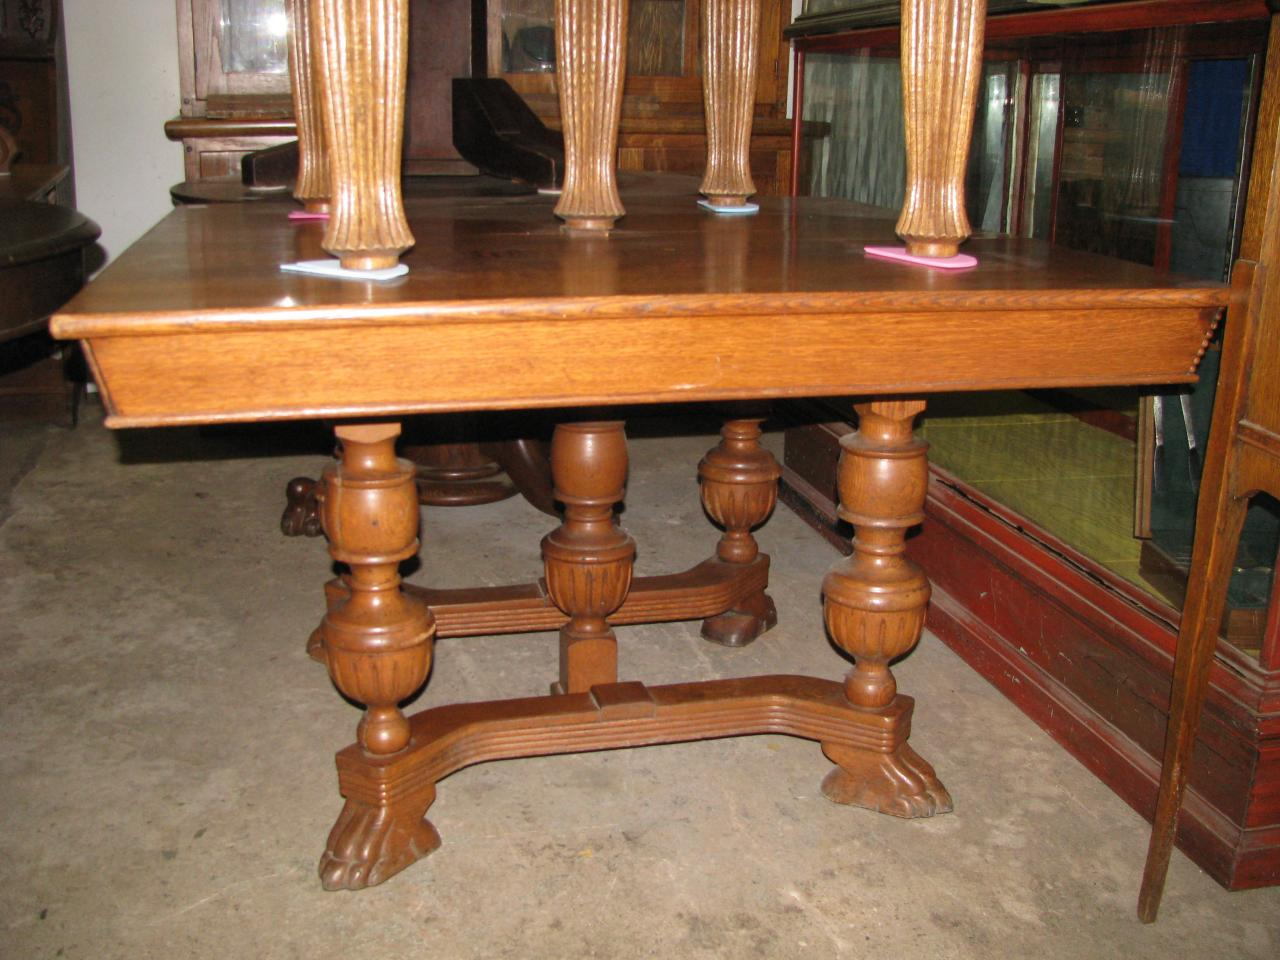 Zs antiques restorations antique oak walnut and pine tables 210000 48 square oak table 5 legs with claw feet 145000 watchthetrailerfo